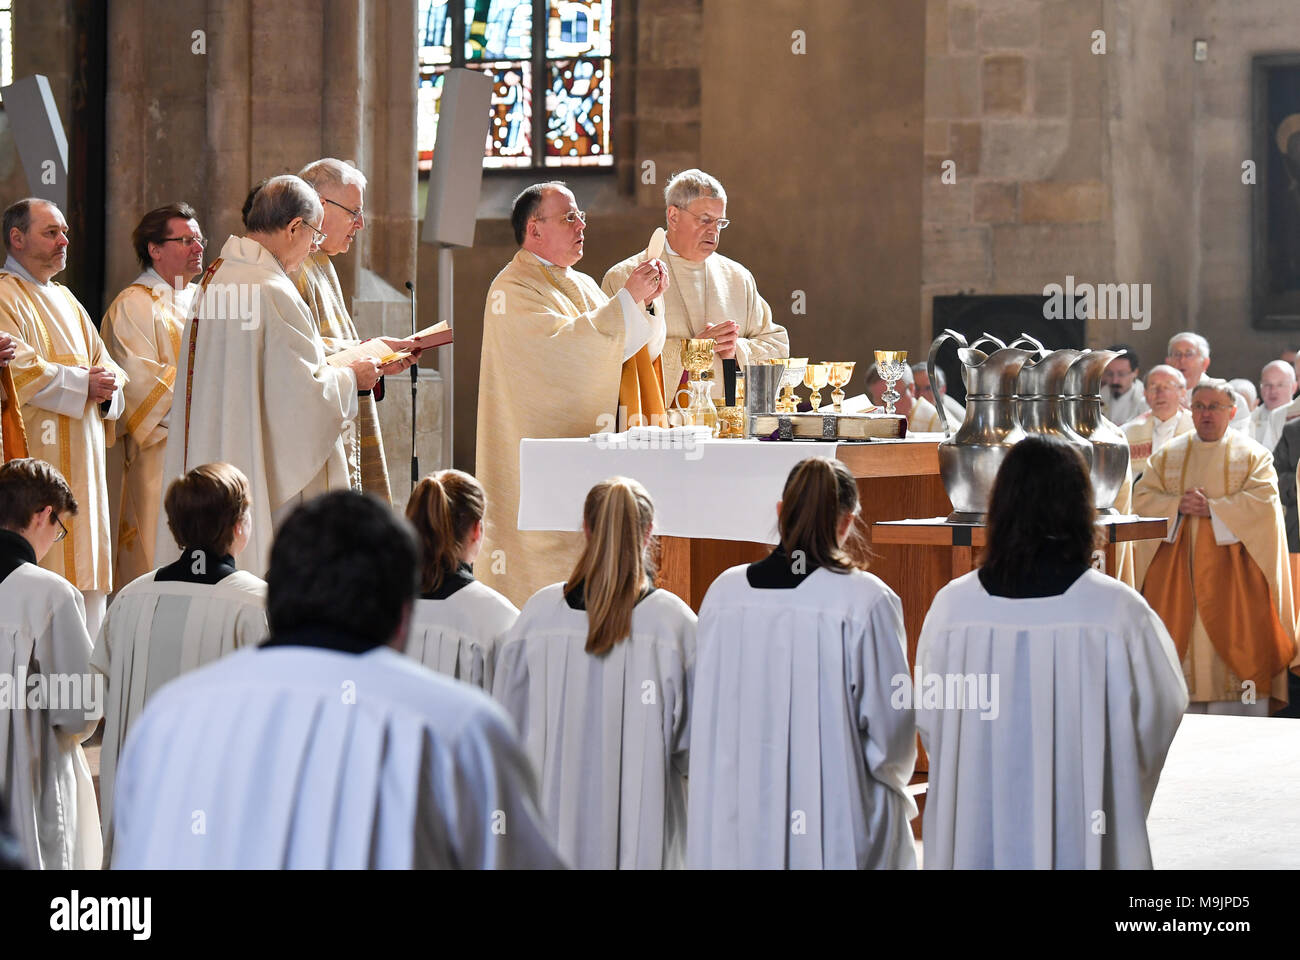 27 March 2018, Germany, Erfurt: An oil consecration mass taking place at the Erfurt Cathedral with suffragan bishop Reinhard Hauke (6-L) and bishop Ulrich Neymeyr (5-L). The bishop celebrates mass with priests of his diocese. The anointment with oil is intended to express an abundance of blessings, power and healing. Photo: Jens Kalaene/dpa - Stock Image